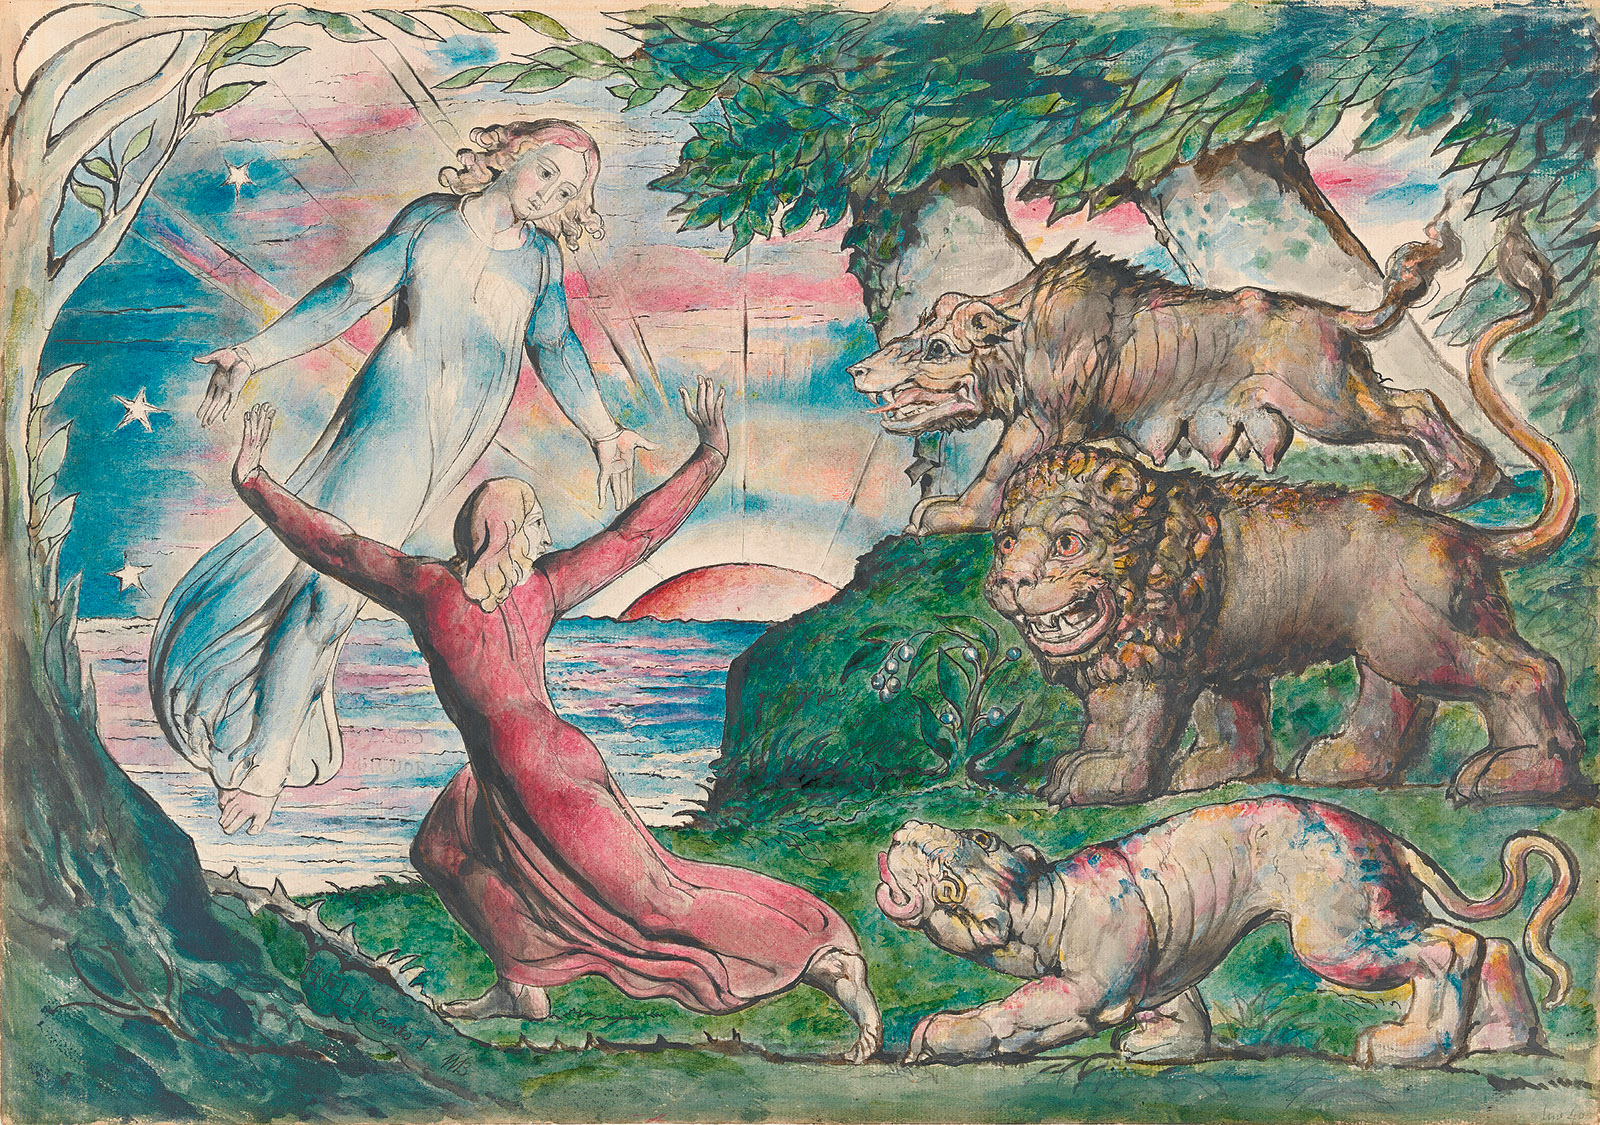 William Blake: Dante Running from the Three Beasts, 1824–1827